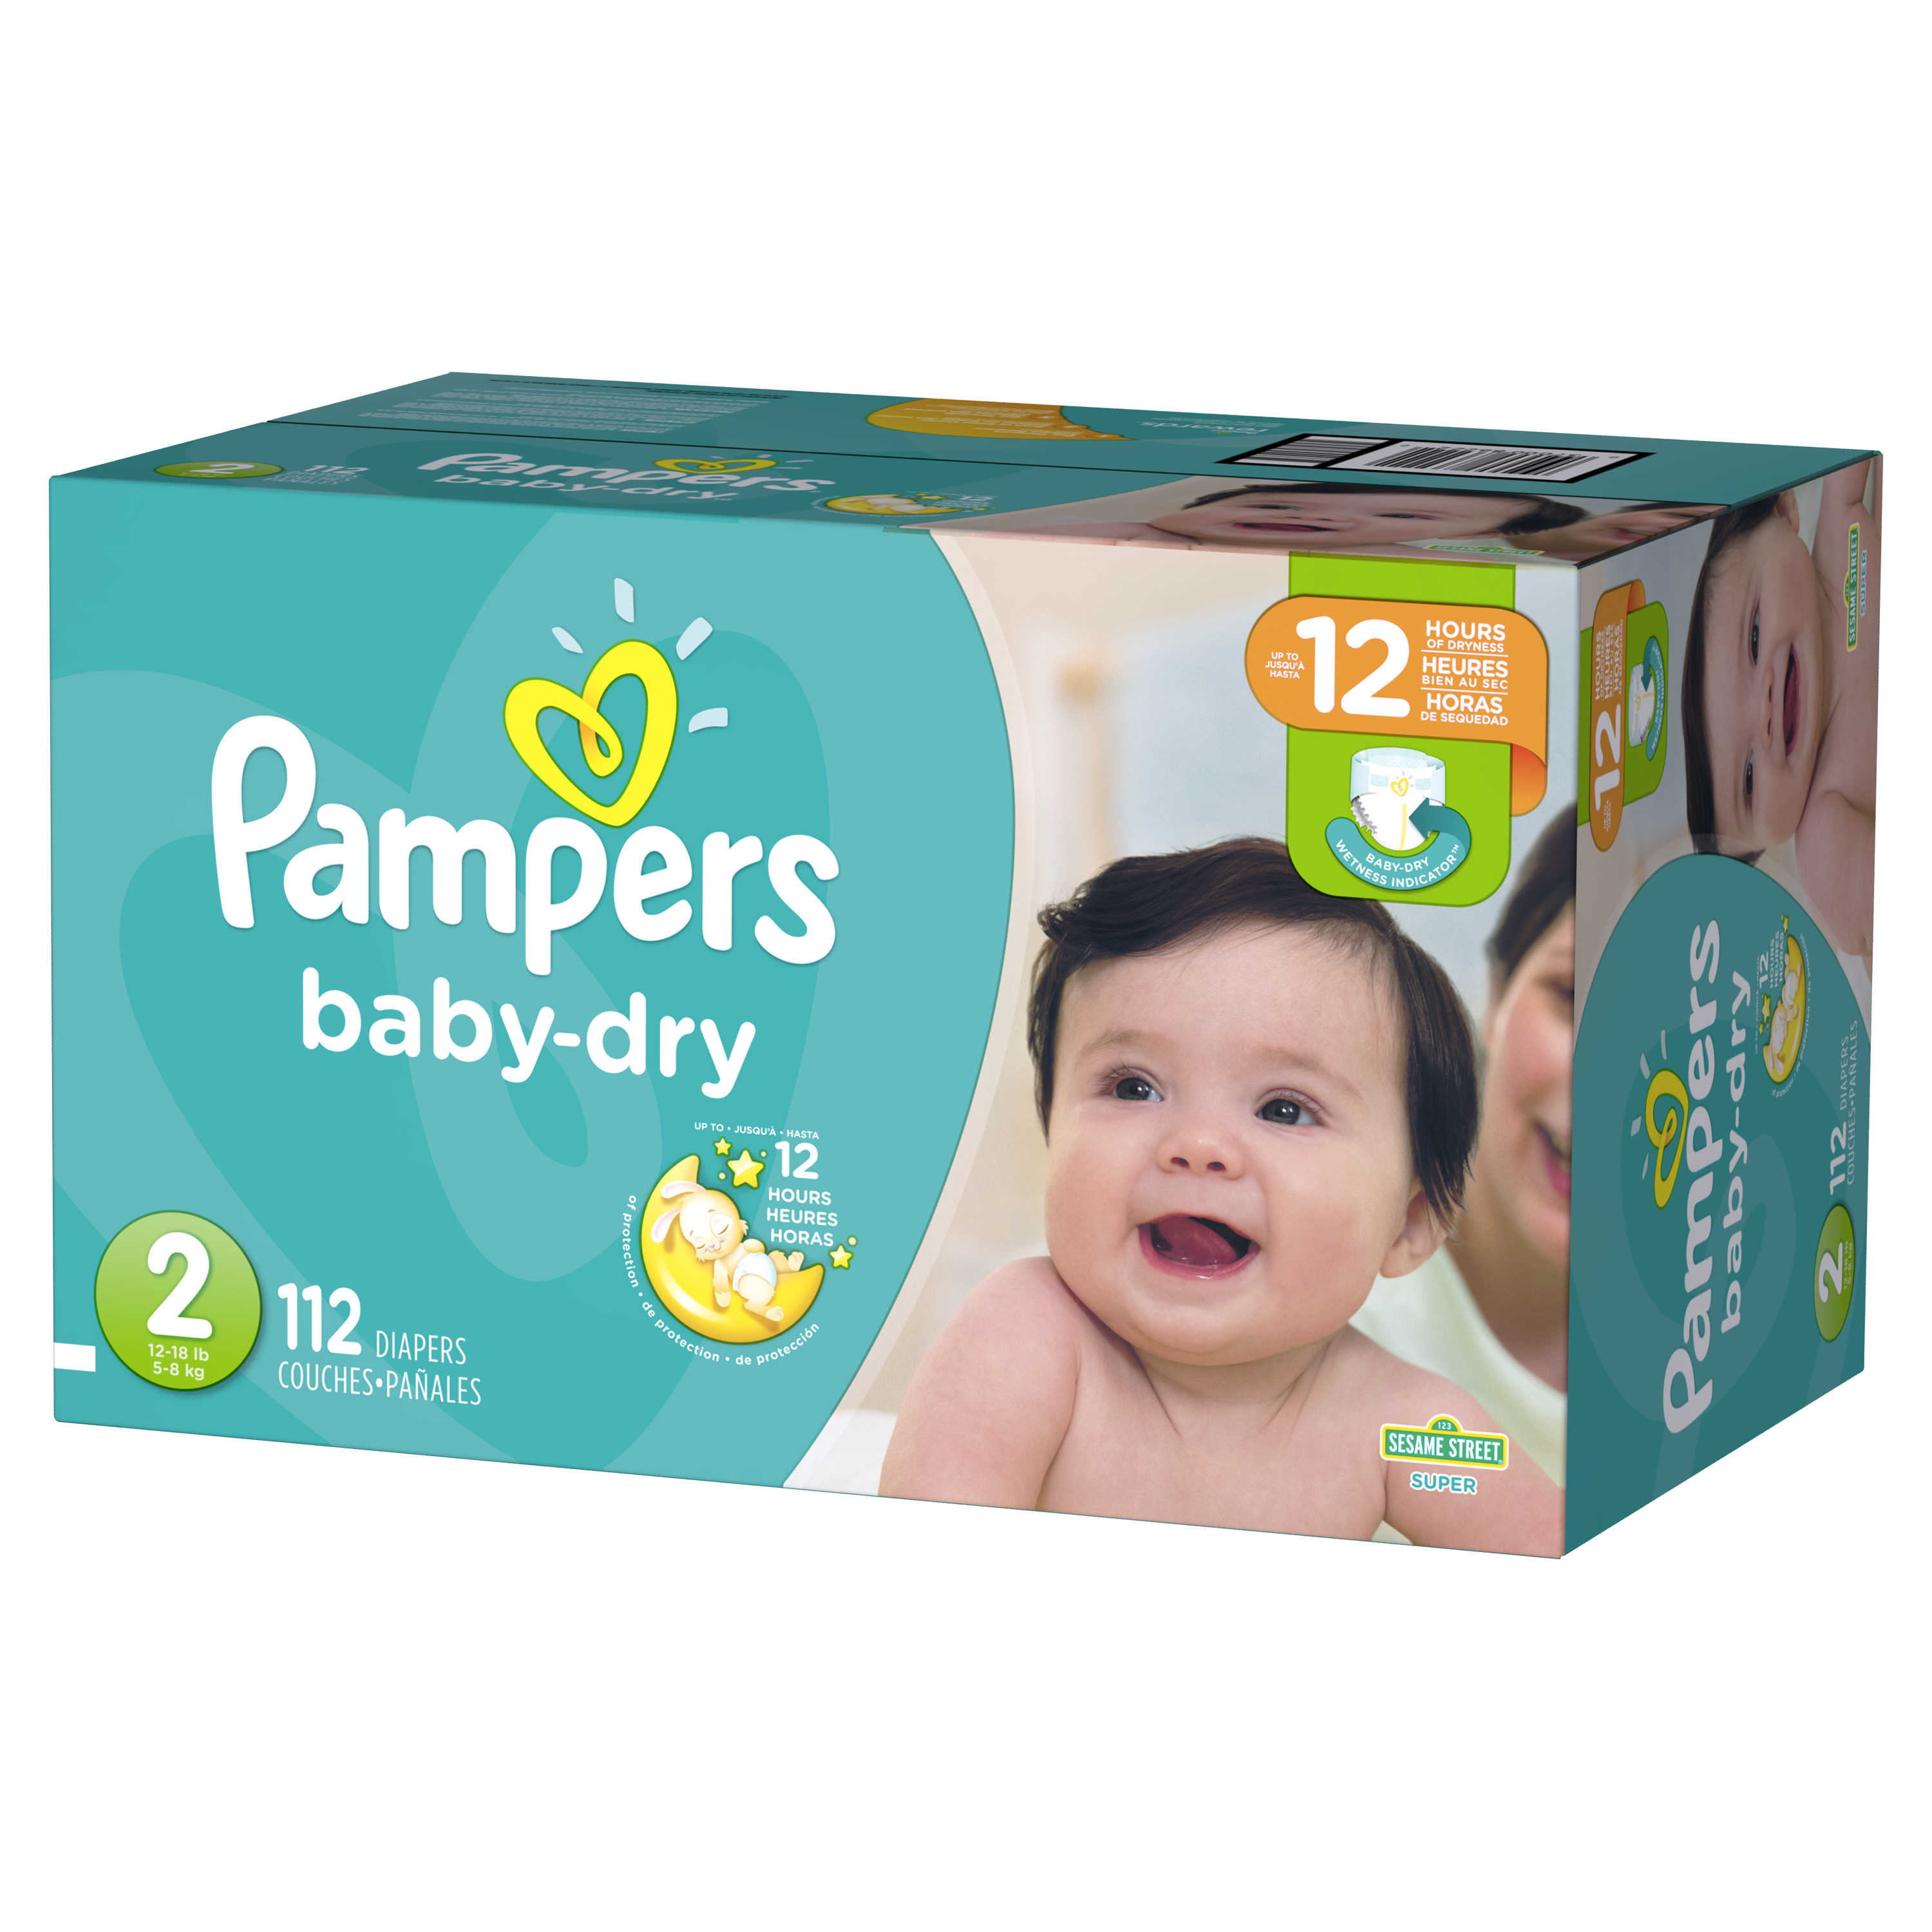 Pampers Baby-Dry Diapers Size 2 112 Count